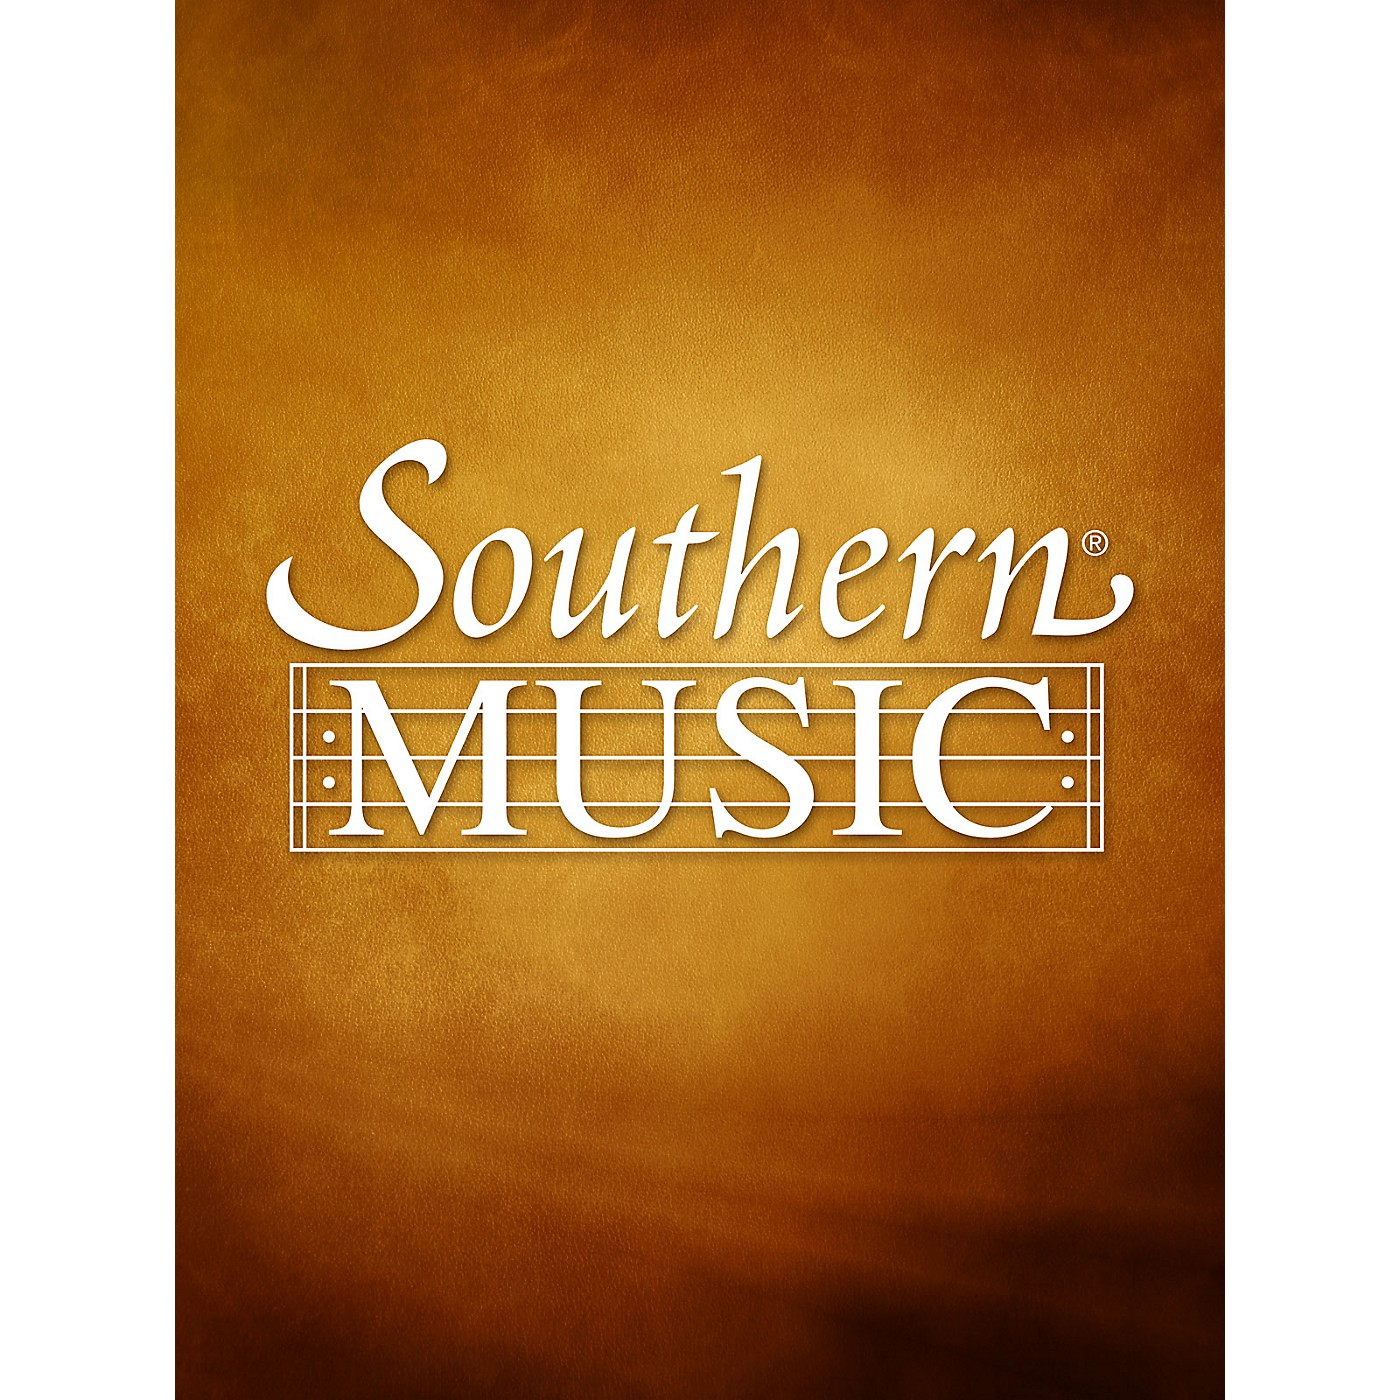 Southern Texas Fight (Marching Band/Marching Band Music) Marching Band Level 3 Composed by Vincent Dinino thumbnail